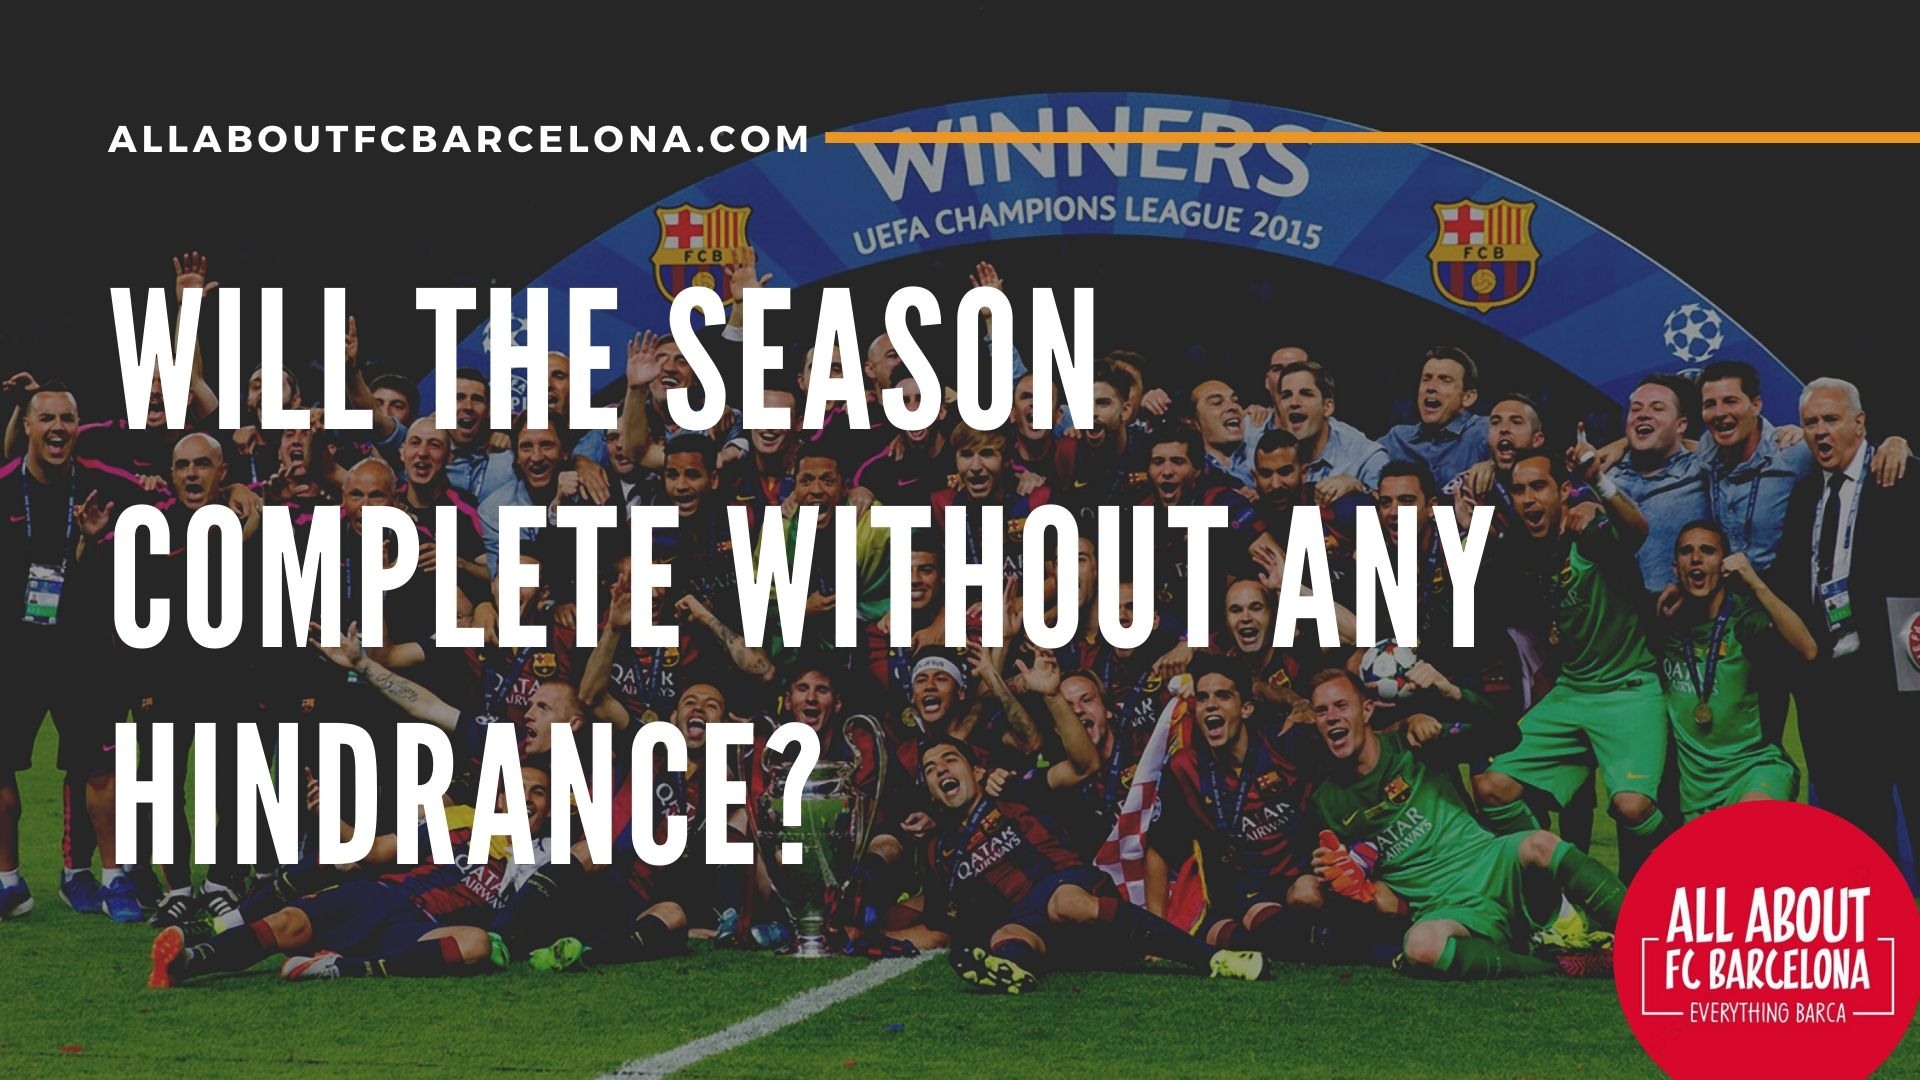 Will the Season complete without any hindrance?